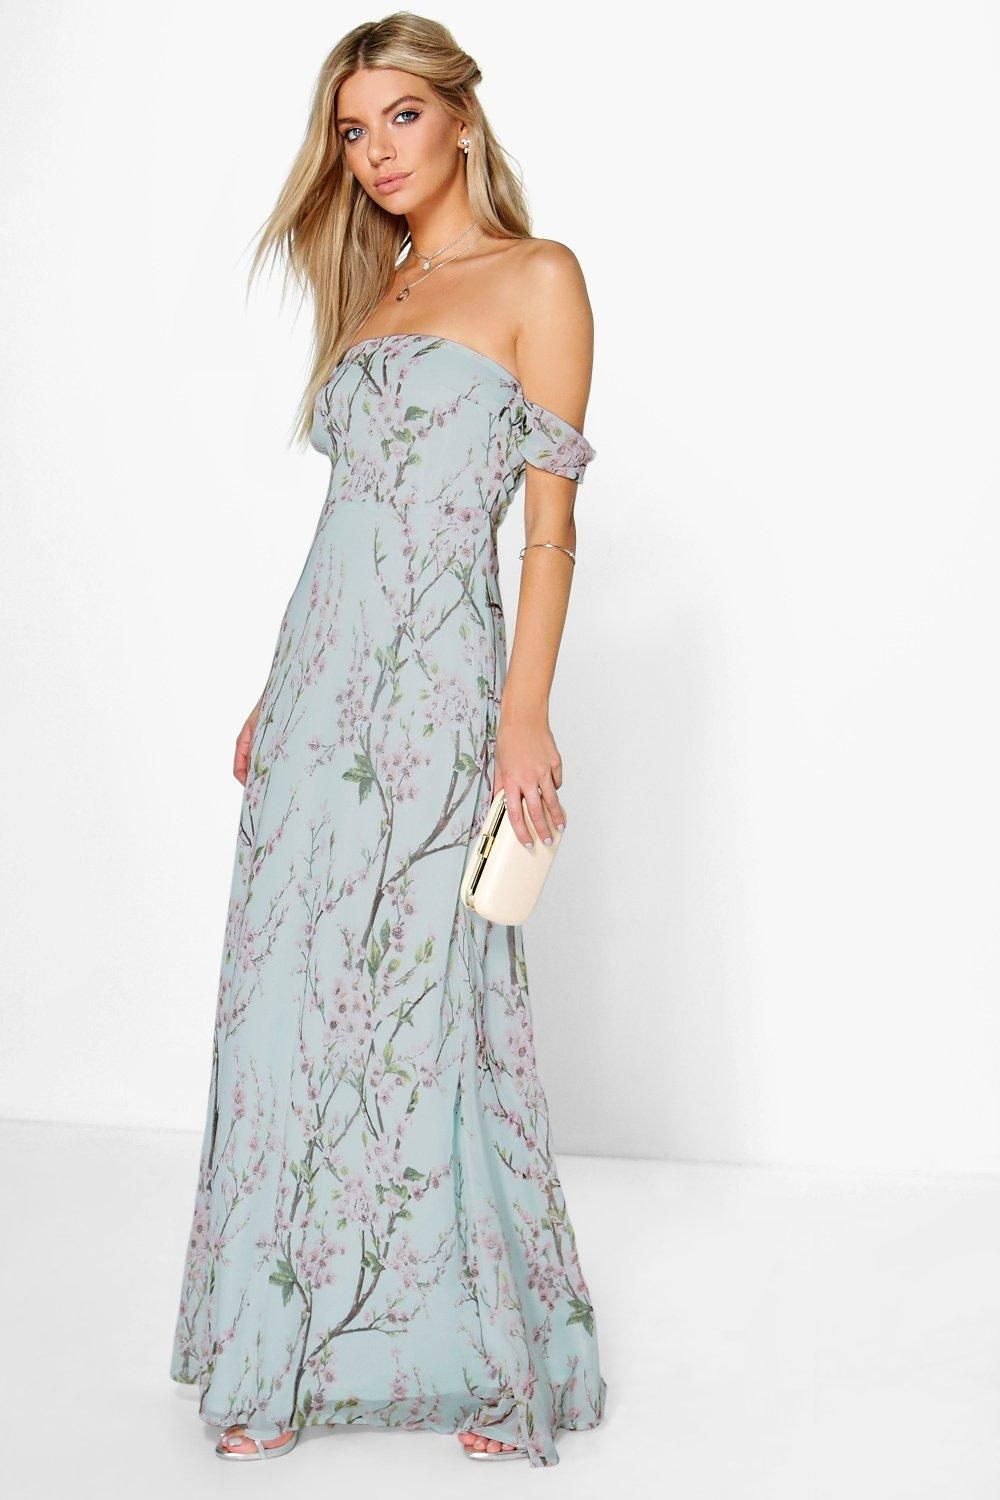 eb6100a316 Click here to find out about the Jessica Floral Off The Shoulder Maxi Dress  from Boohoo, part of our latest Dresses collection ready to shop online  today!